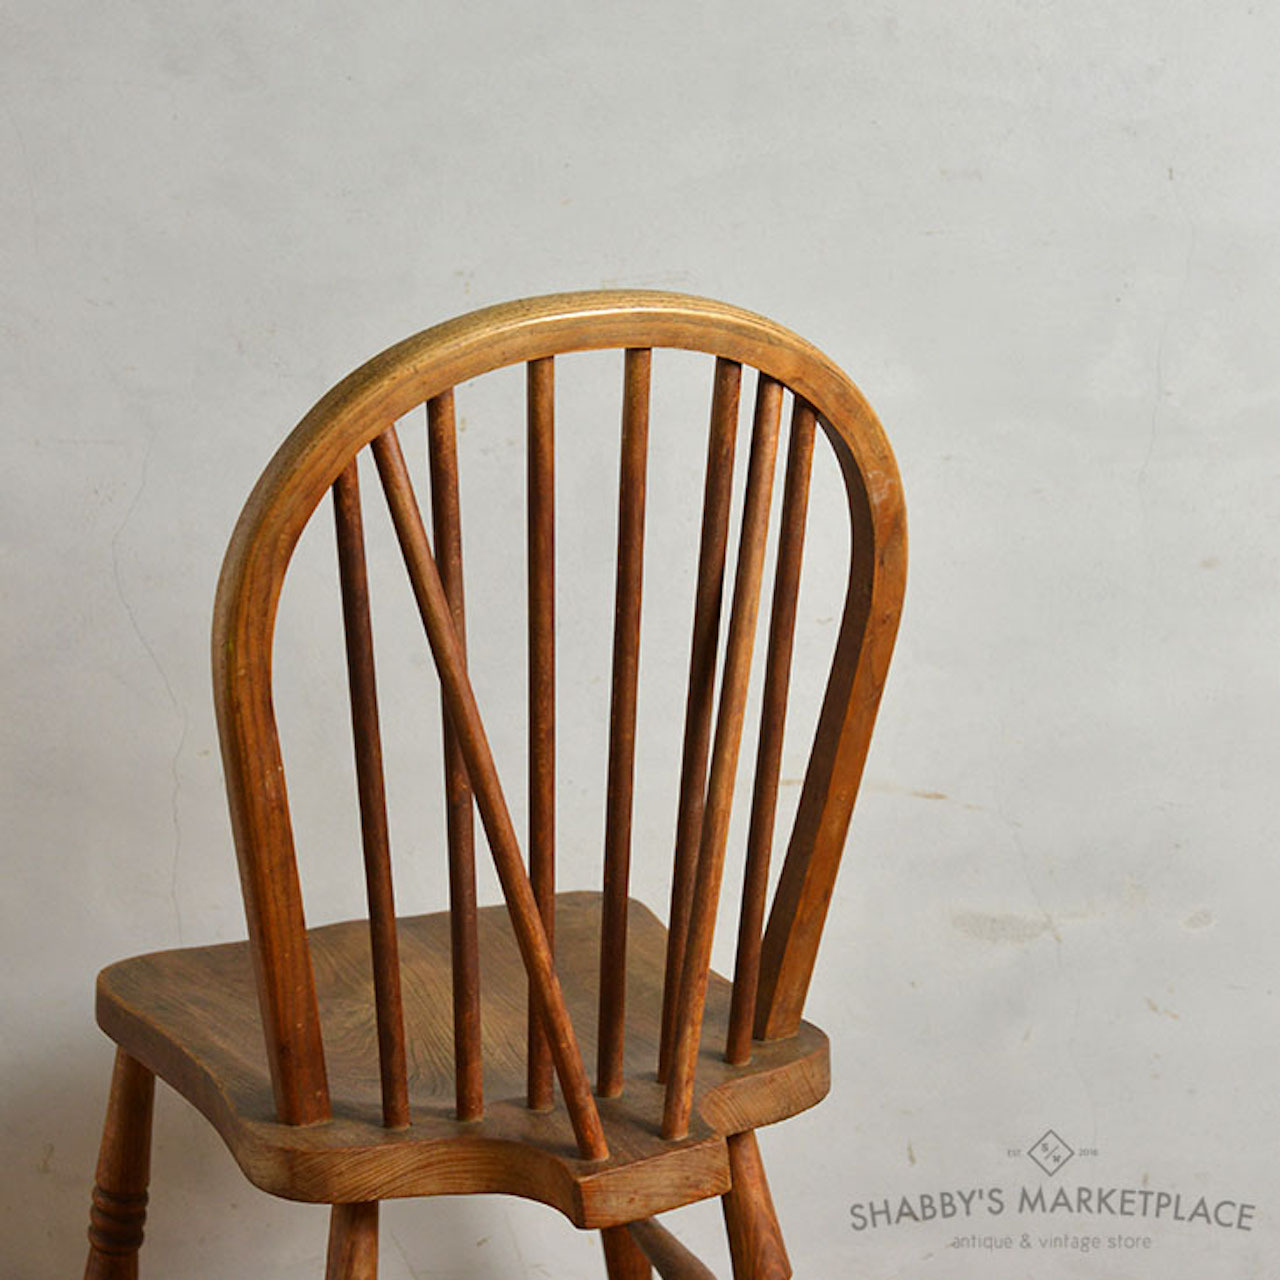 Kitchen Chair / キッチン チェア 〈ダイニングチェア・ウィンザーチェア〉